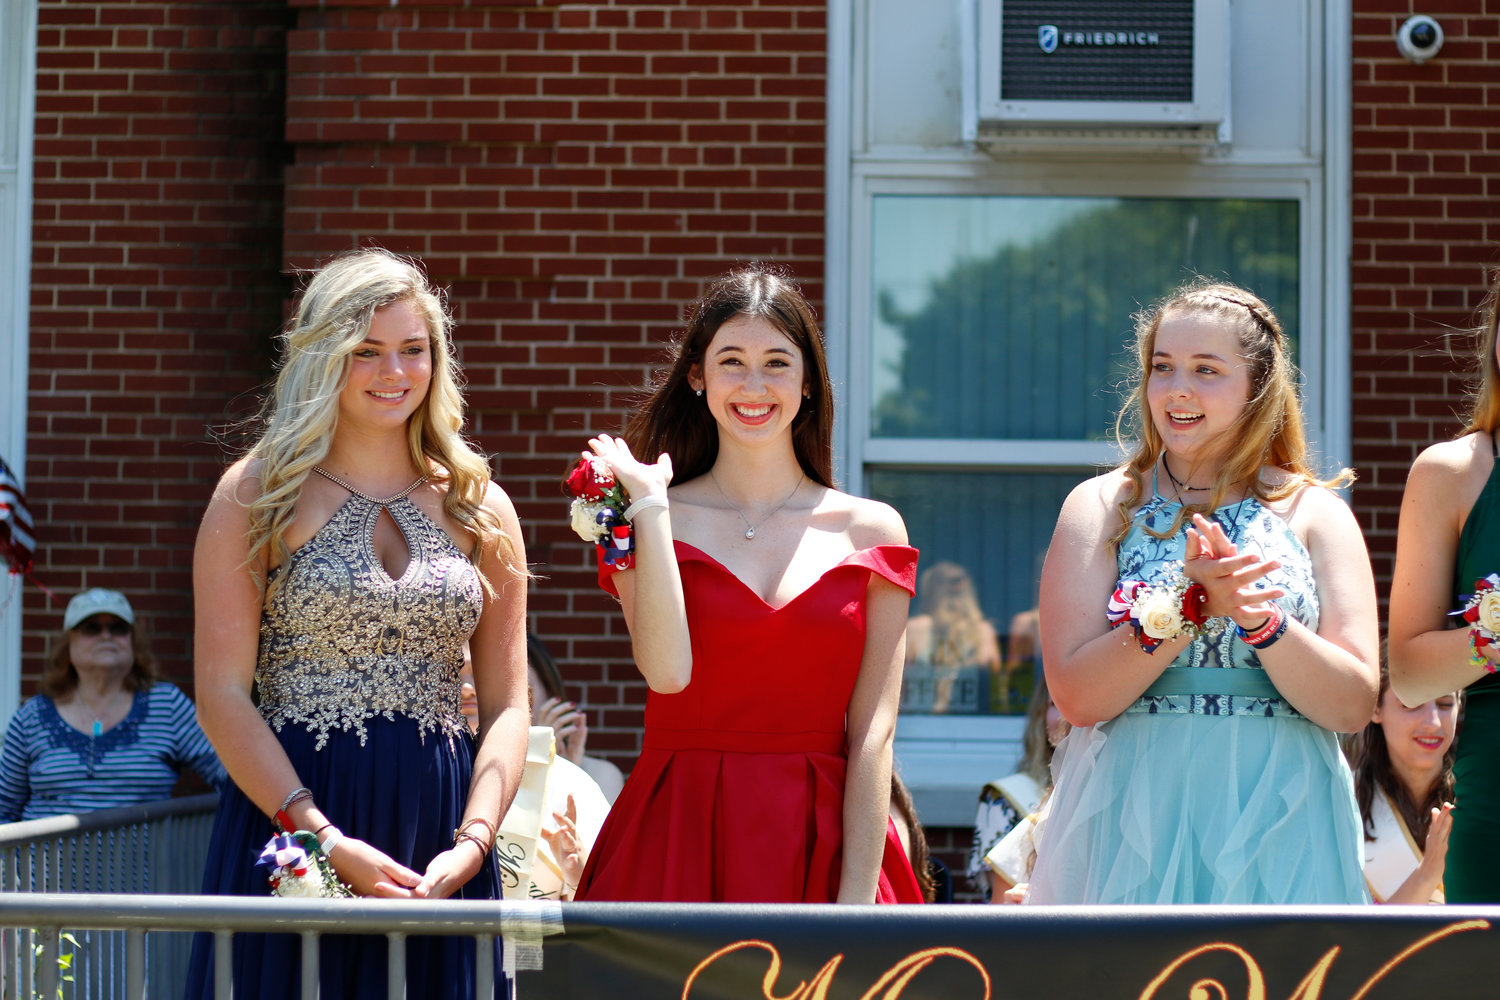 Juliet Watstein, center, with first runner-up Grace Mansari, left, and second runner-up Erin Cunnane.